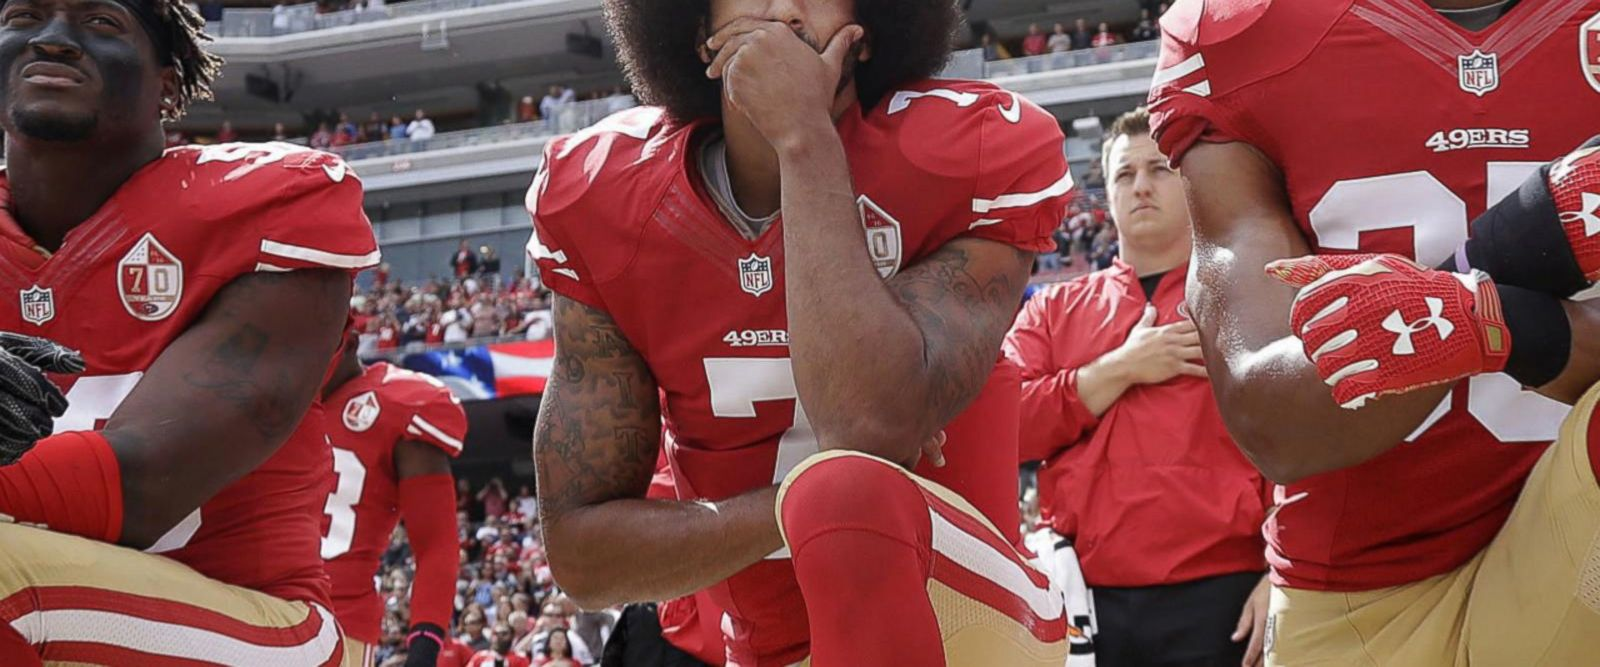 VIDEO: Colin Kaepernick remains unsigned amid national anthem controversy